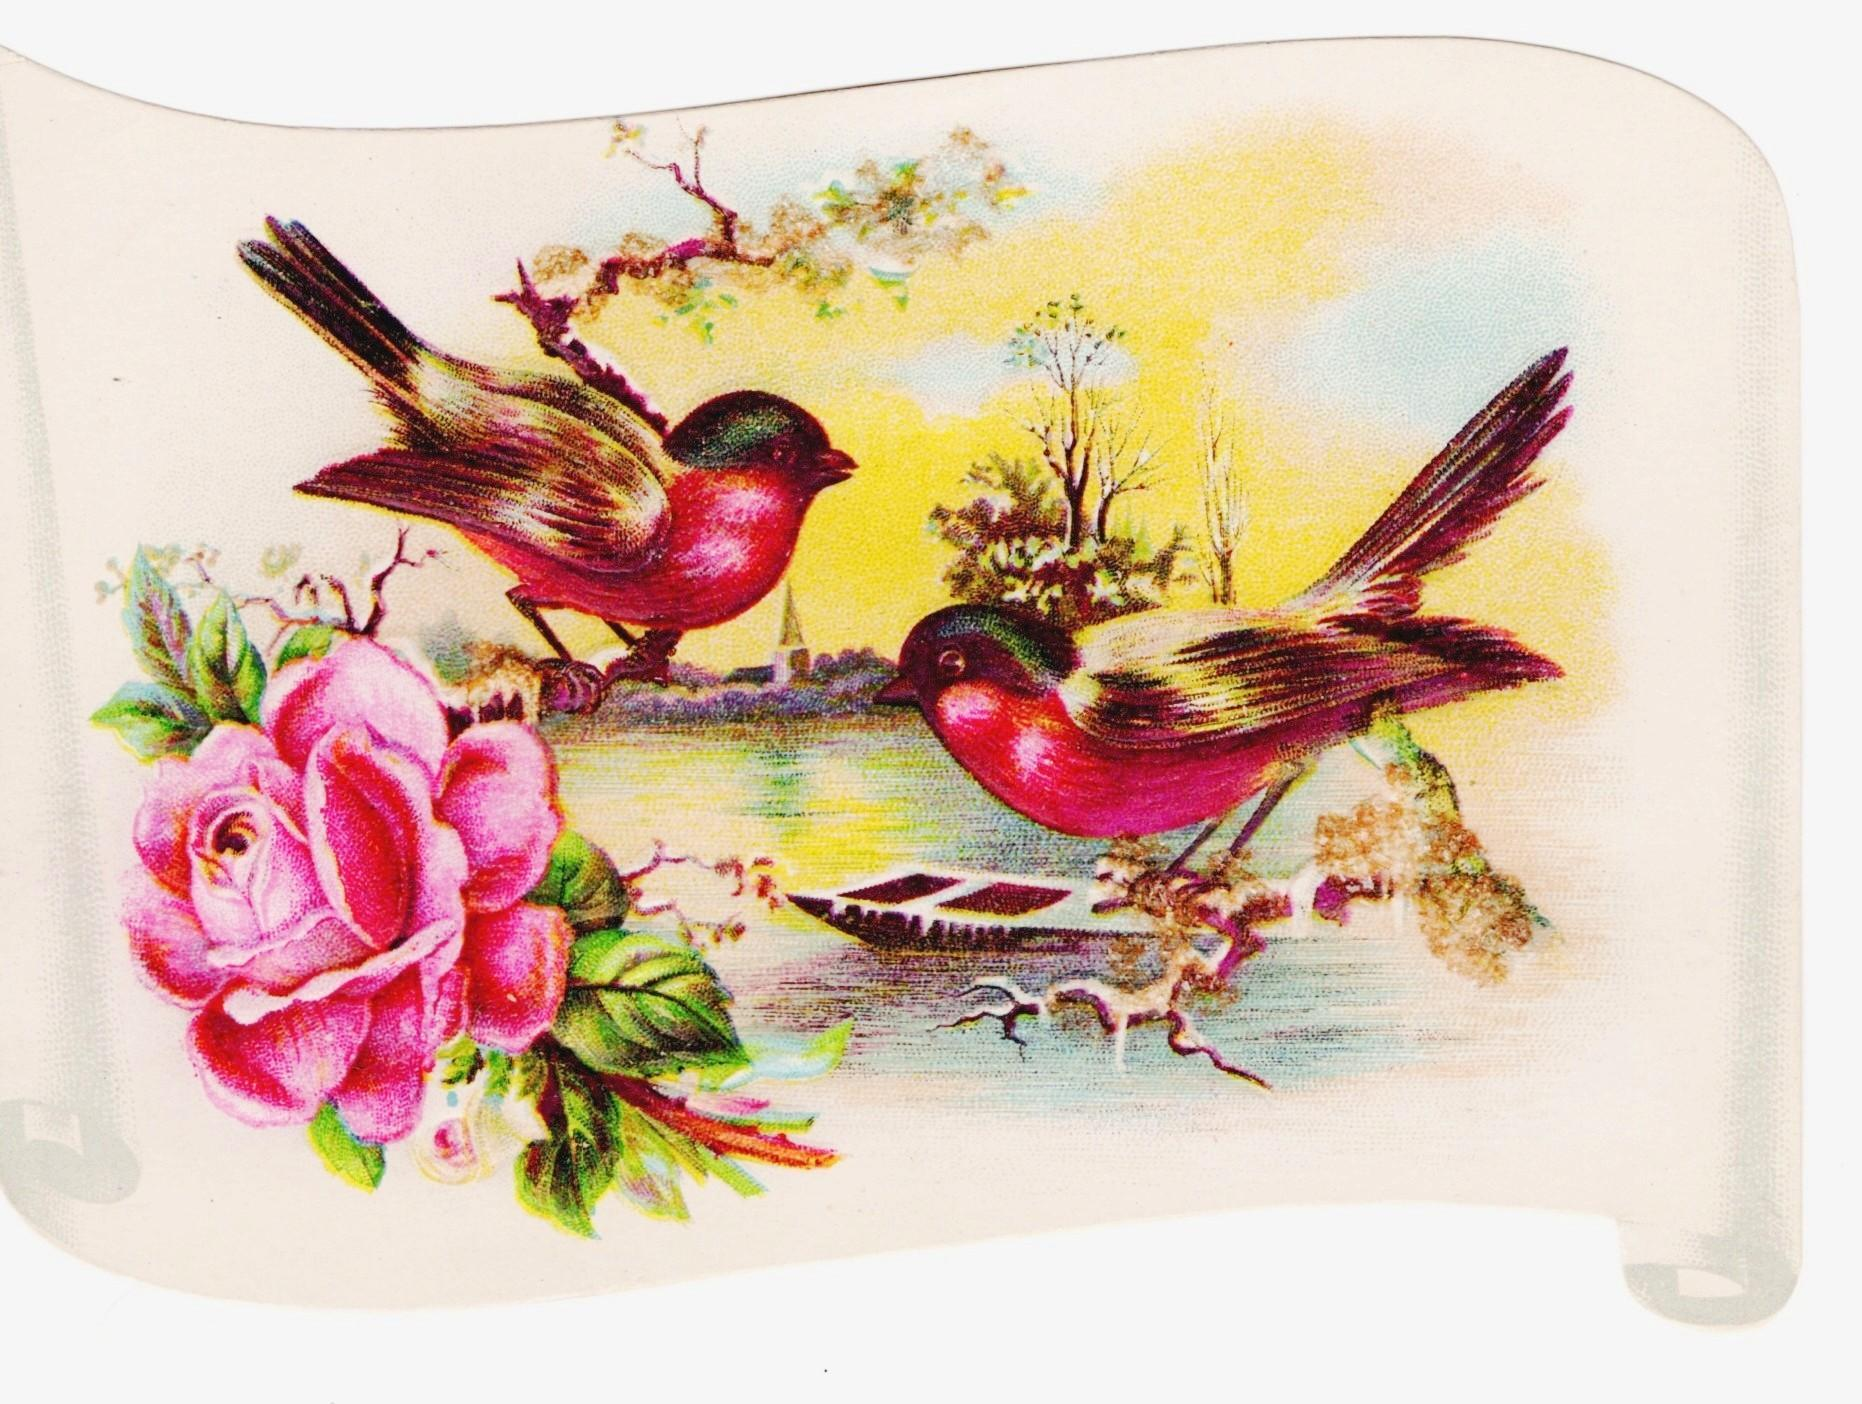 1890s Saint Louis Victorian Arithmetic School Achievement Scroll Lithograph Card Album Scrap - Birds & Rose Scroll - Spring Landscape - Glitter Coated Branches - Embossed